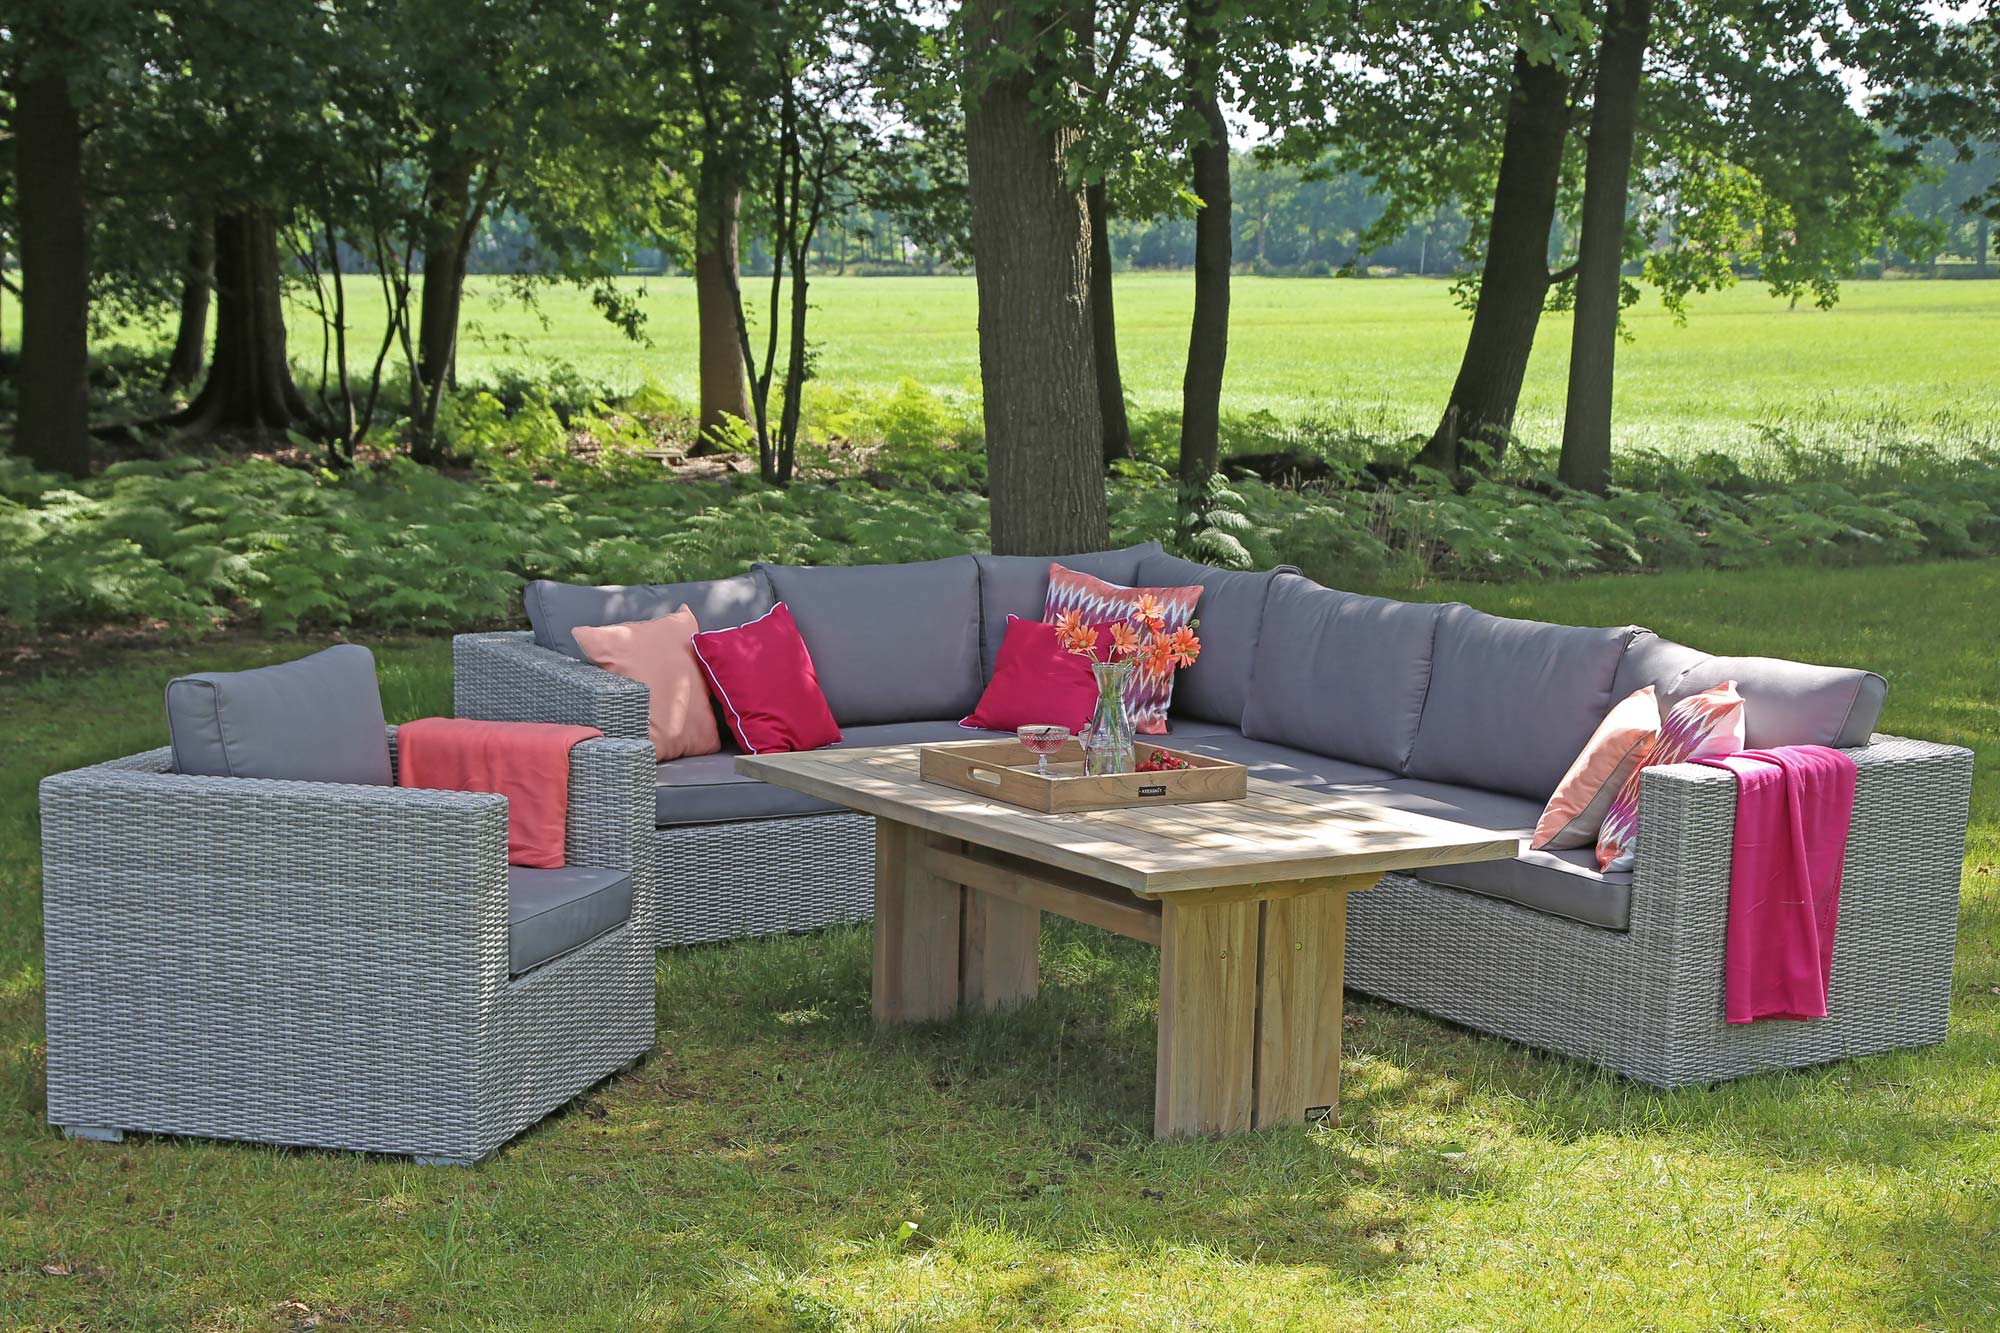 Tuin styling   4 trends   maison belle